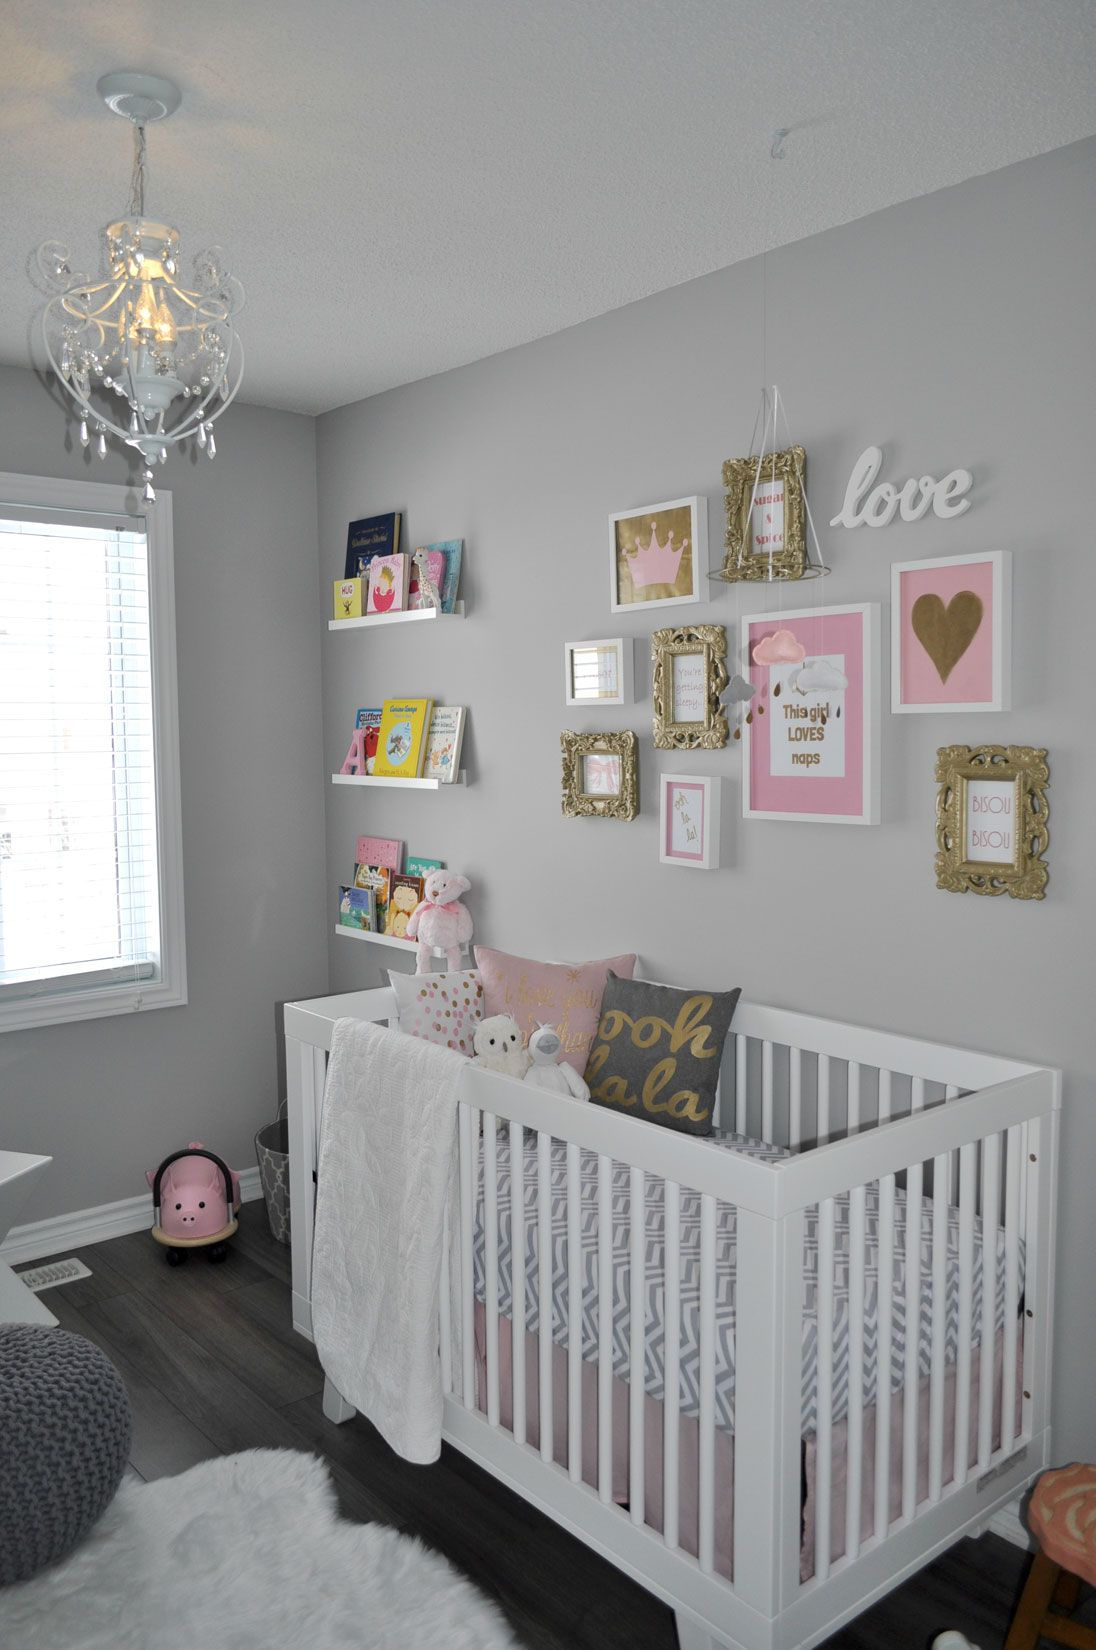 Decor Inspiration: A Pink, Gold, and Grey Nursery for a ...